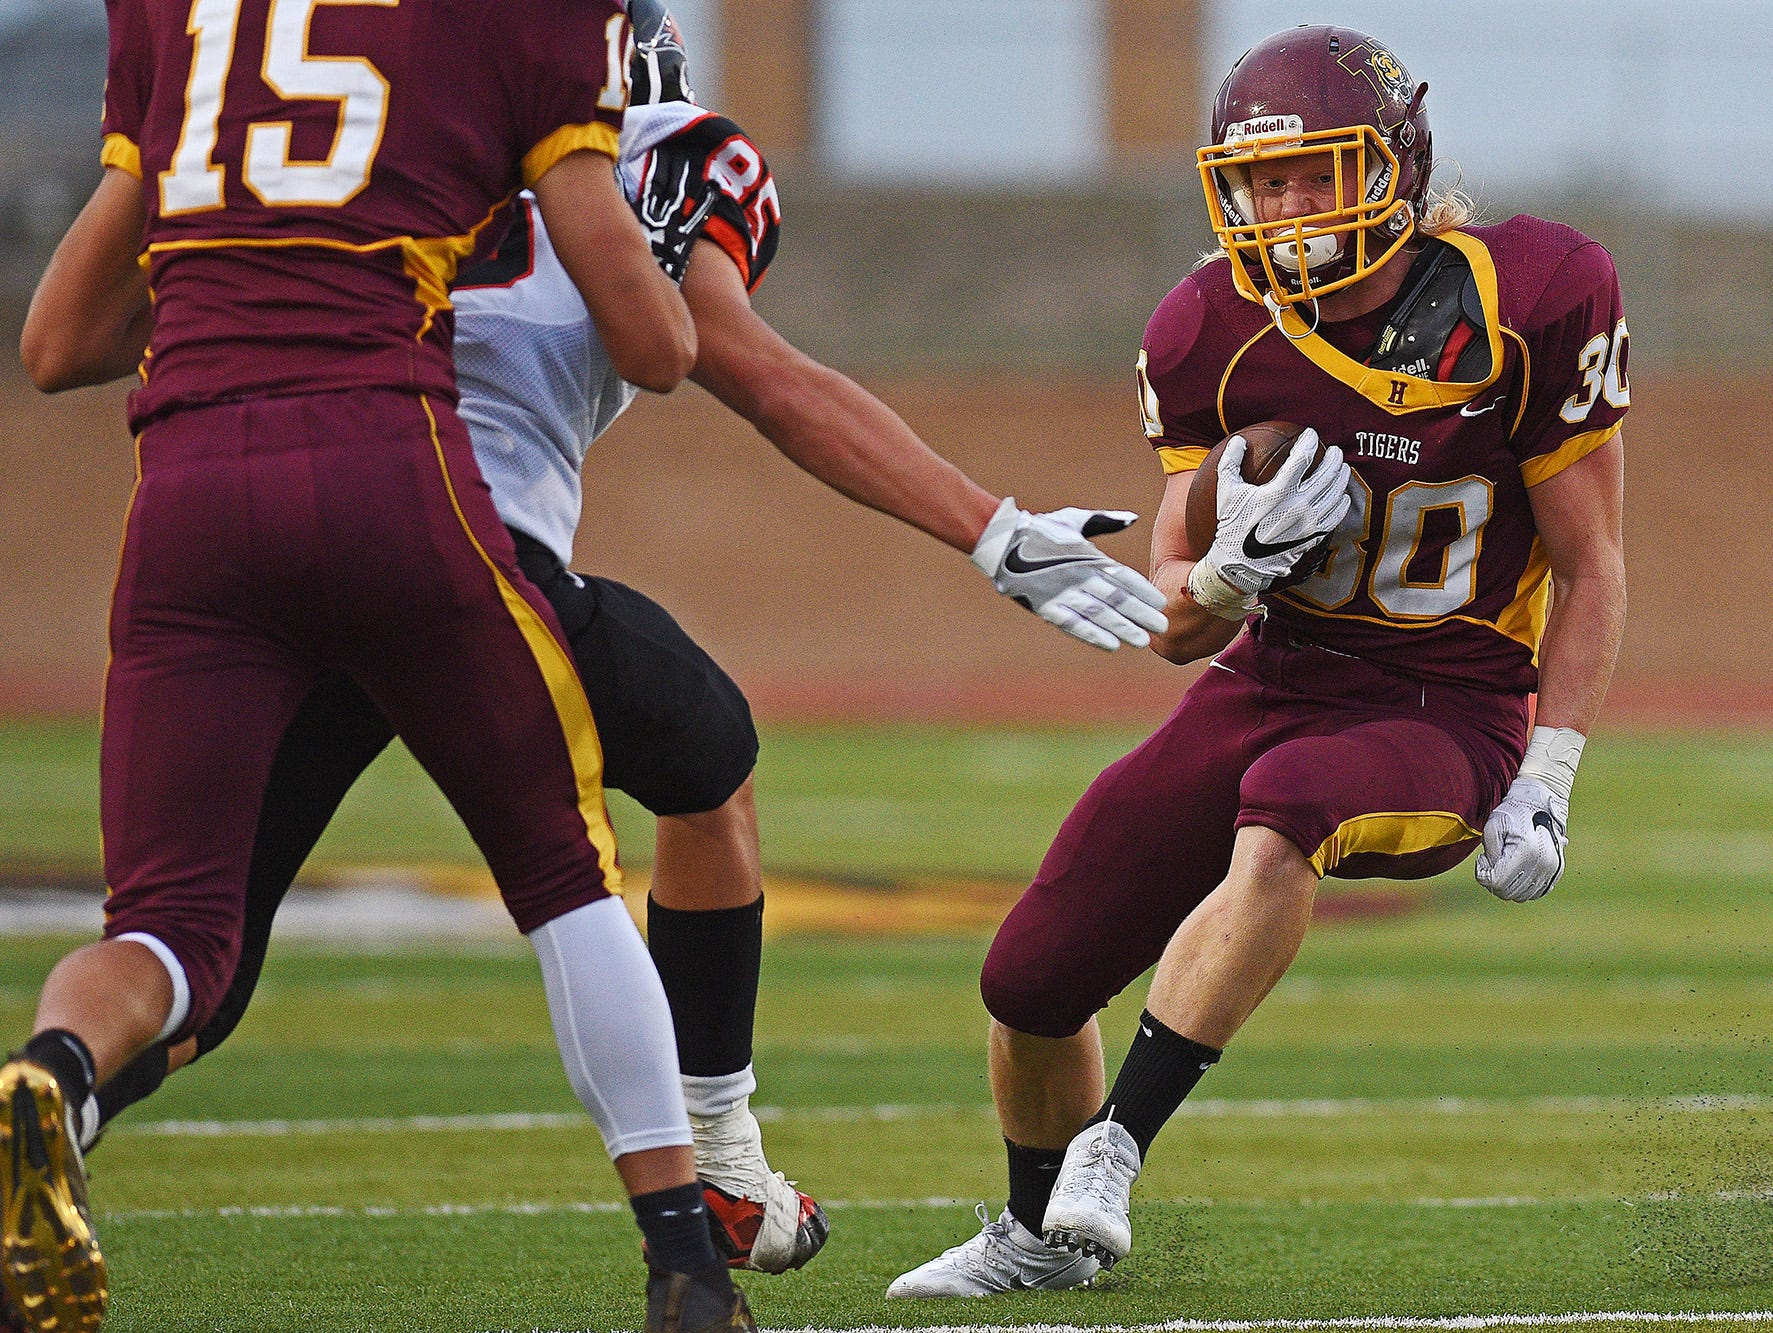 Harrisburg's Jack Anderson (30) rushes with the ball during a game against Huron at Harrisburg High School Friday, Sept. 2, 2016, in Harrisburg, S.D.